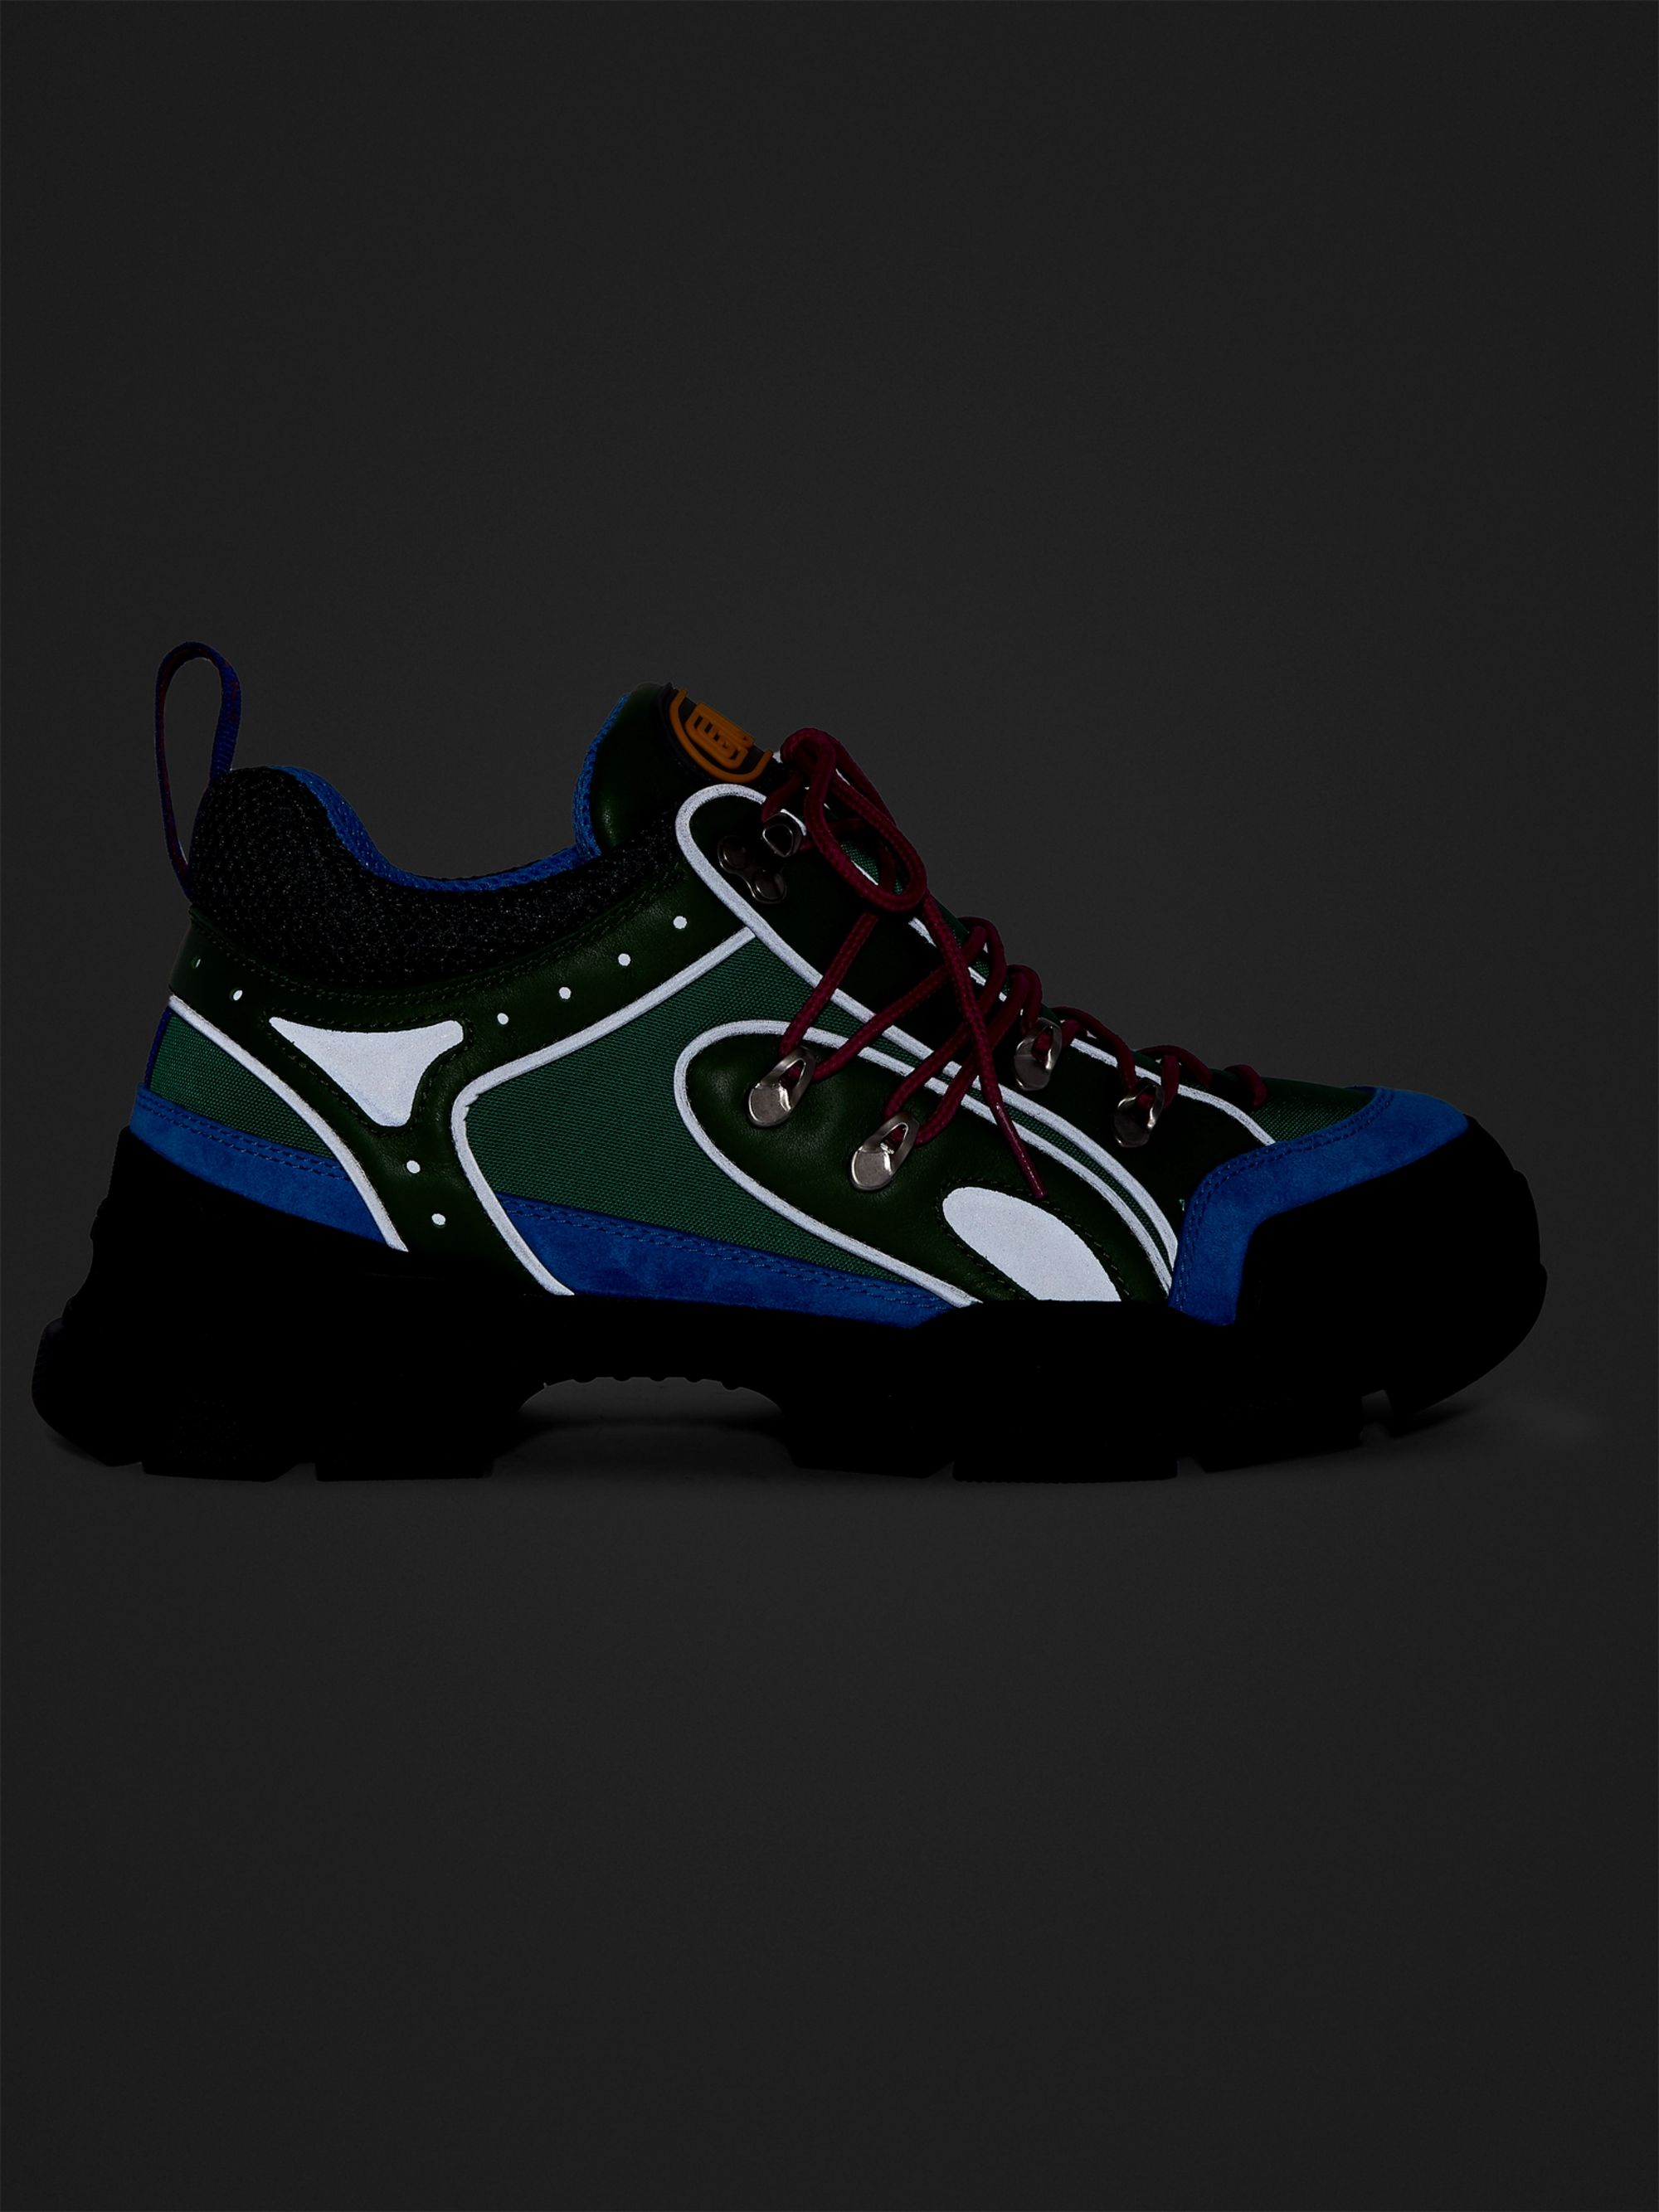 GUCCI Flashtrek Reflective Leather, Suede and Mesh Sneakers